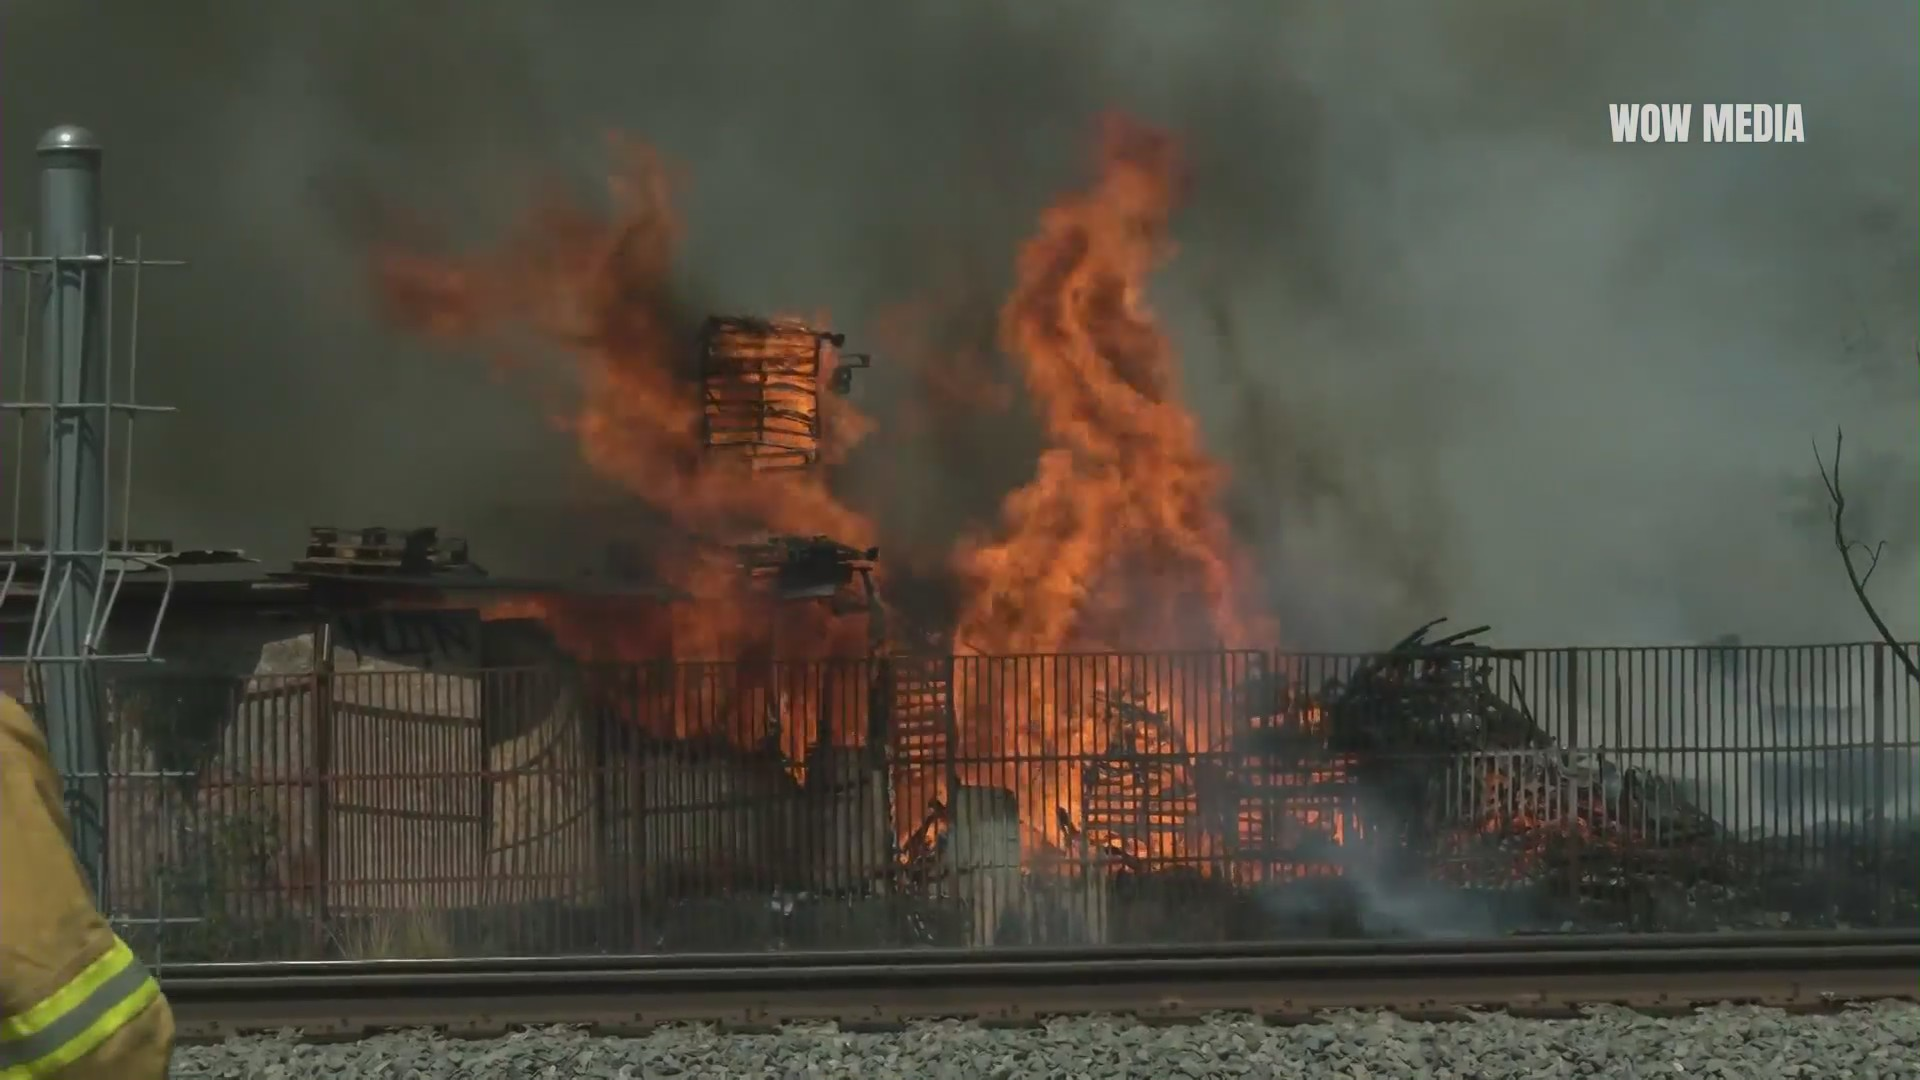 An arson investigation is underway after LAFD extinguished a pallet fire on Sunday, Aug. 2, 2021 in Pacoima. (Wow Media)